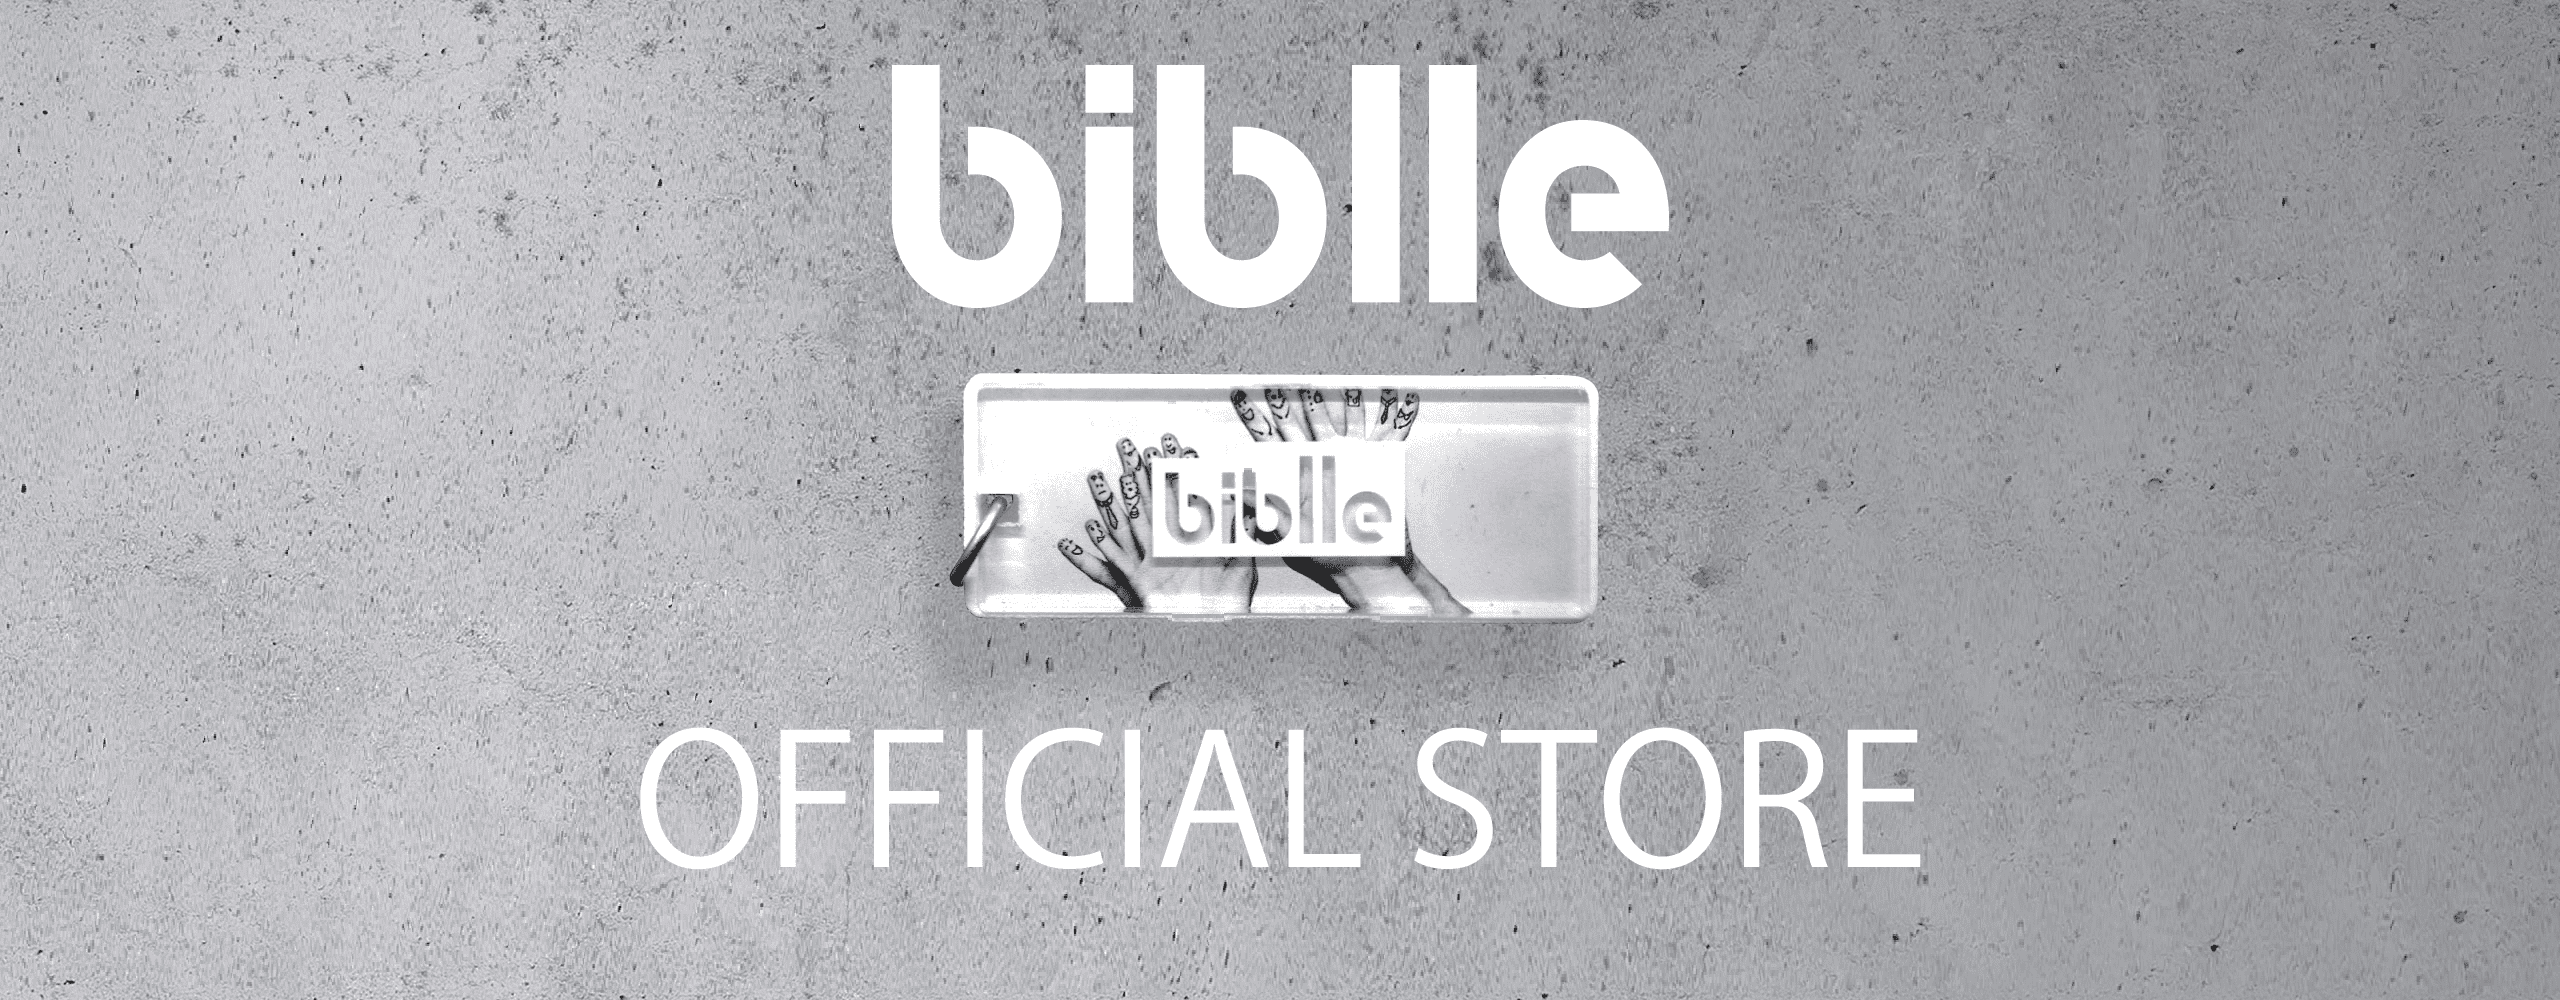 biblle OFFICIAL STORE